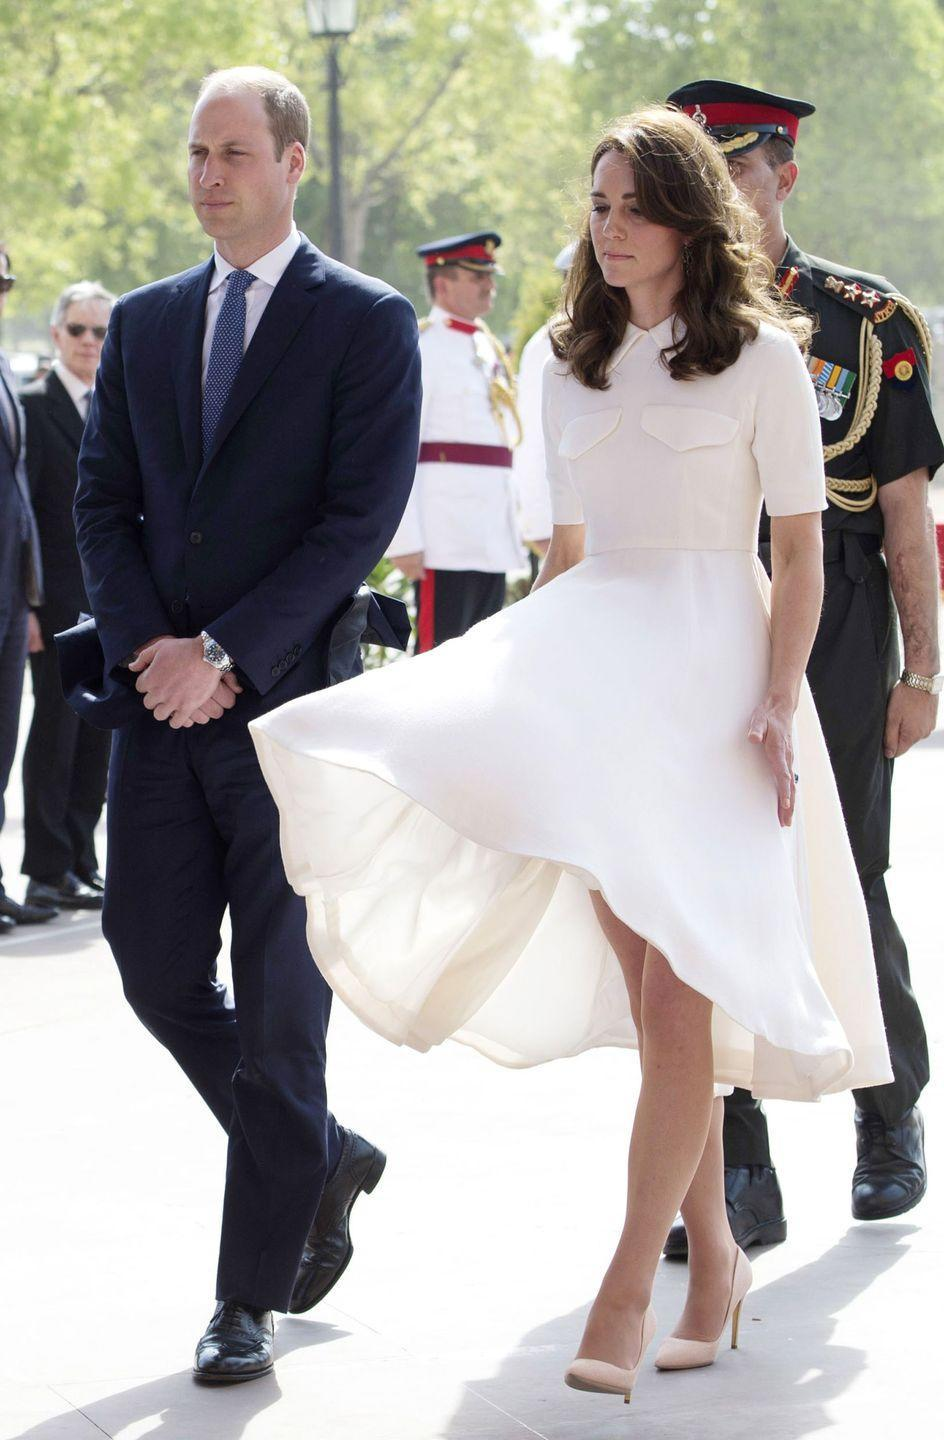 """<p>Kate is the Queen (pun intended) of the Marilyn Monroe wardrobe malfunction. In fact, this moment in 2016 comes closest to looking like an <a href=""""https://www.fashionstylemag.com/2016/celebrity/kate-middleton-had-a-true-marilyn-monroe-moment/"""" rel=""""nofollow noopener"""" target=""""_blank"""" data-ylk=""""slk:exact replica of the iconic photo"""" class=""""link rapid-noclick-resp"""">exact replica of the iconic photo</a>. Kate typically keeps her cool when these incidents occur.</p>"""